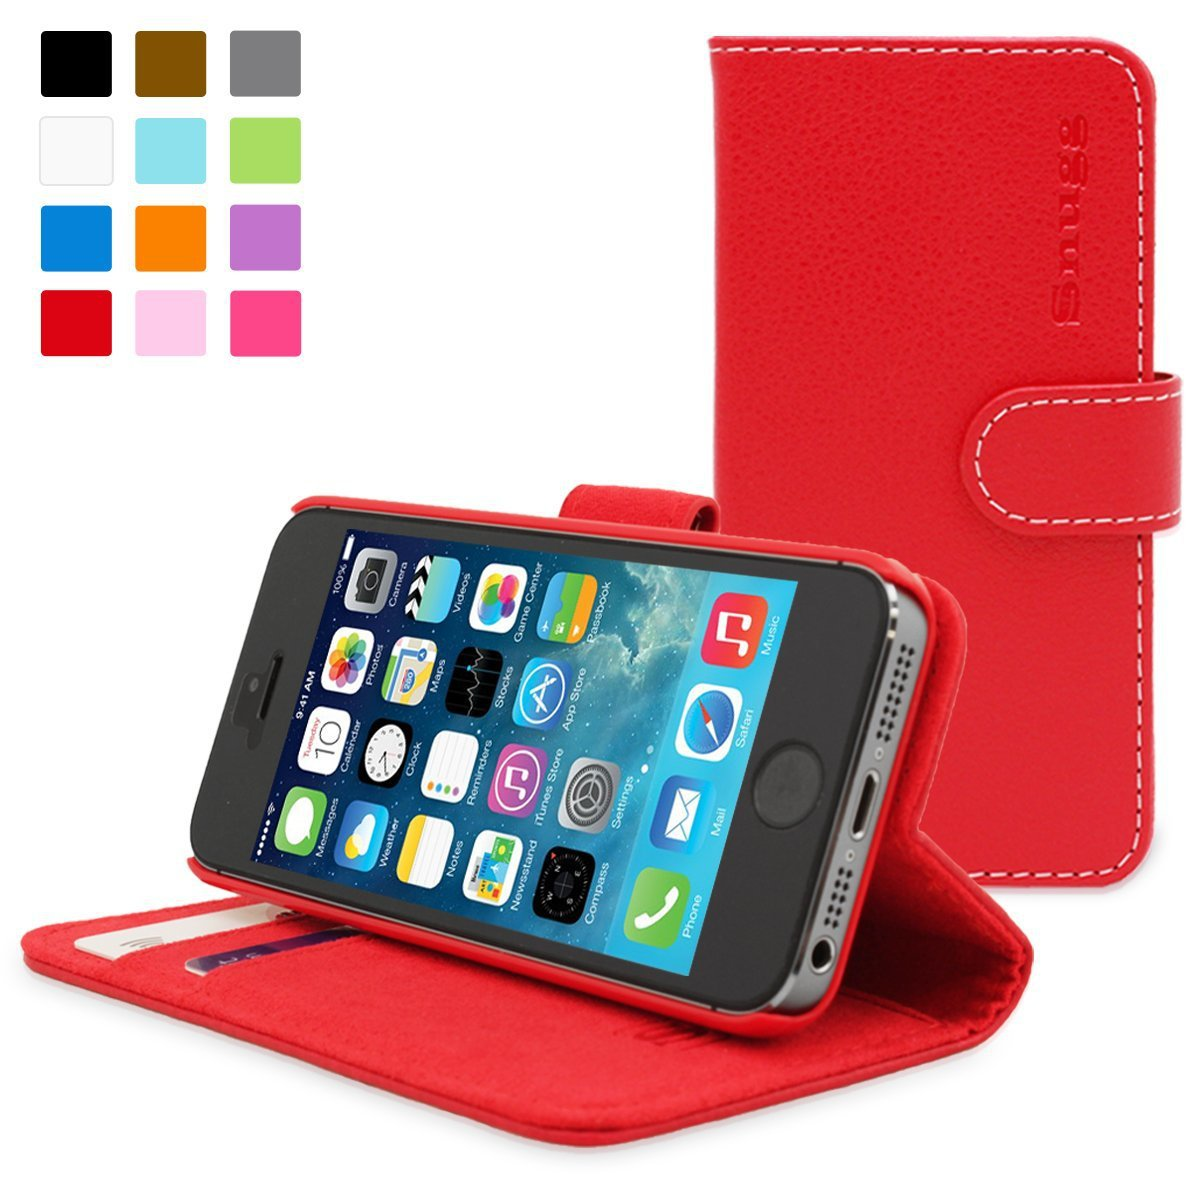 snugg iphone 5 5s case leather flip case with lifetime guarantee red for apple iphone 5 5s. Black Bedroom Furniture Sets. Home Design Ideas